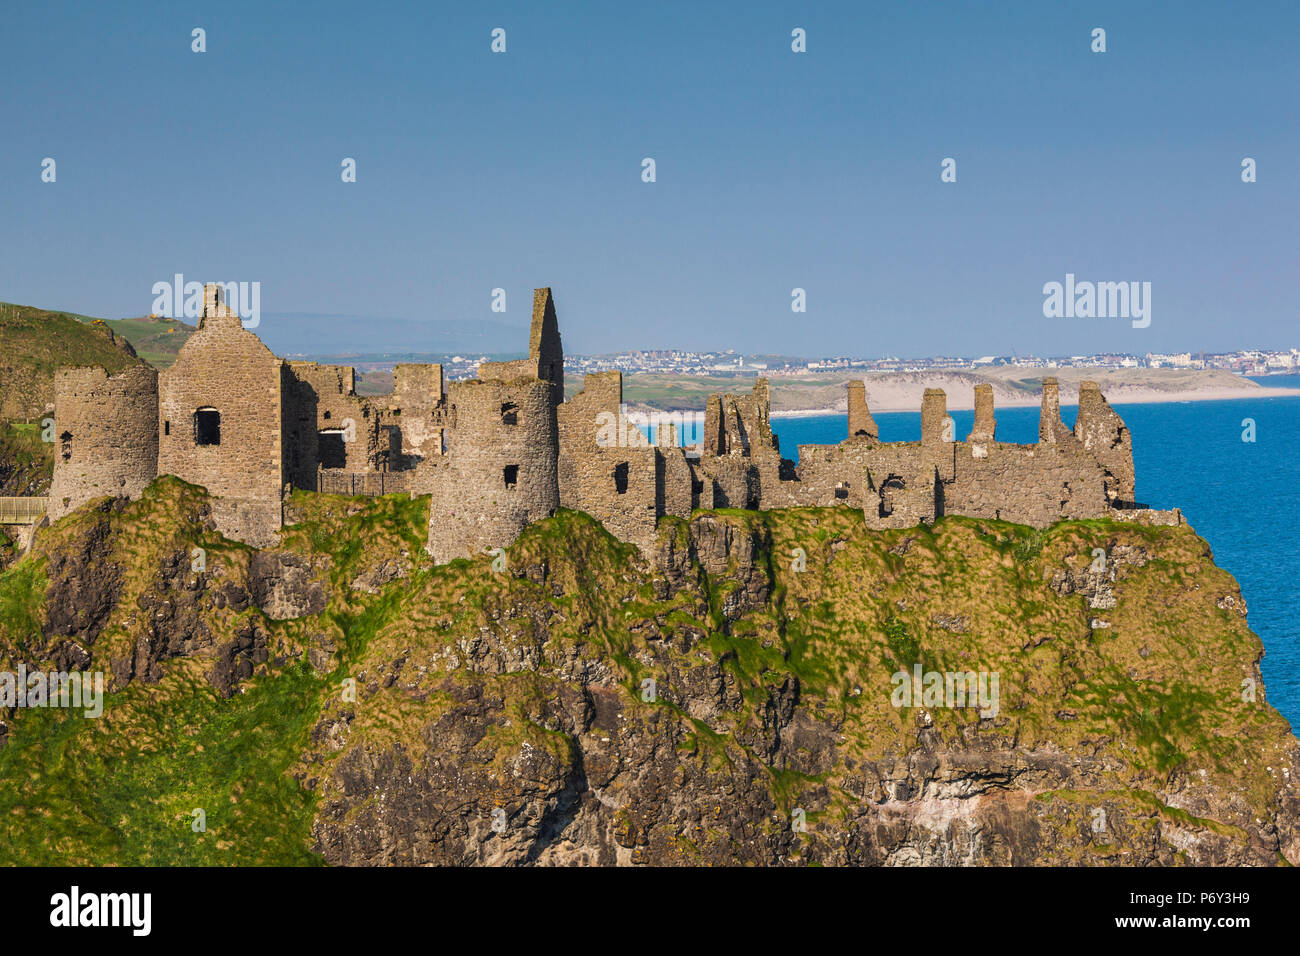 UK, Northern Ireland, County Antrim, Bushmills, Dunluce Castle ruins Stock Photo